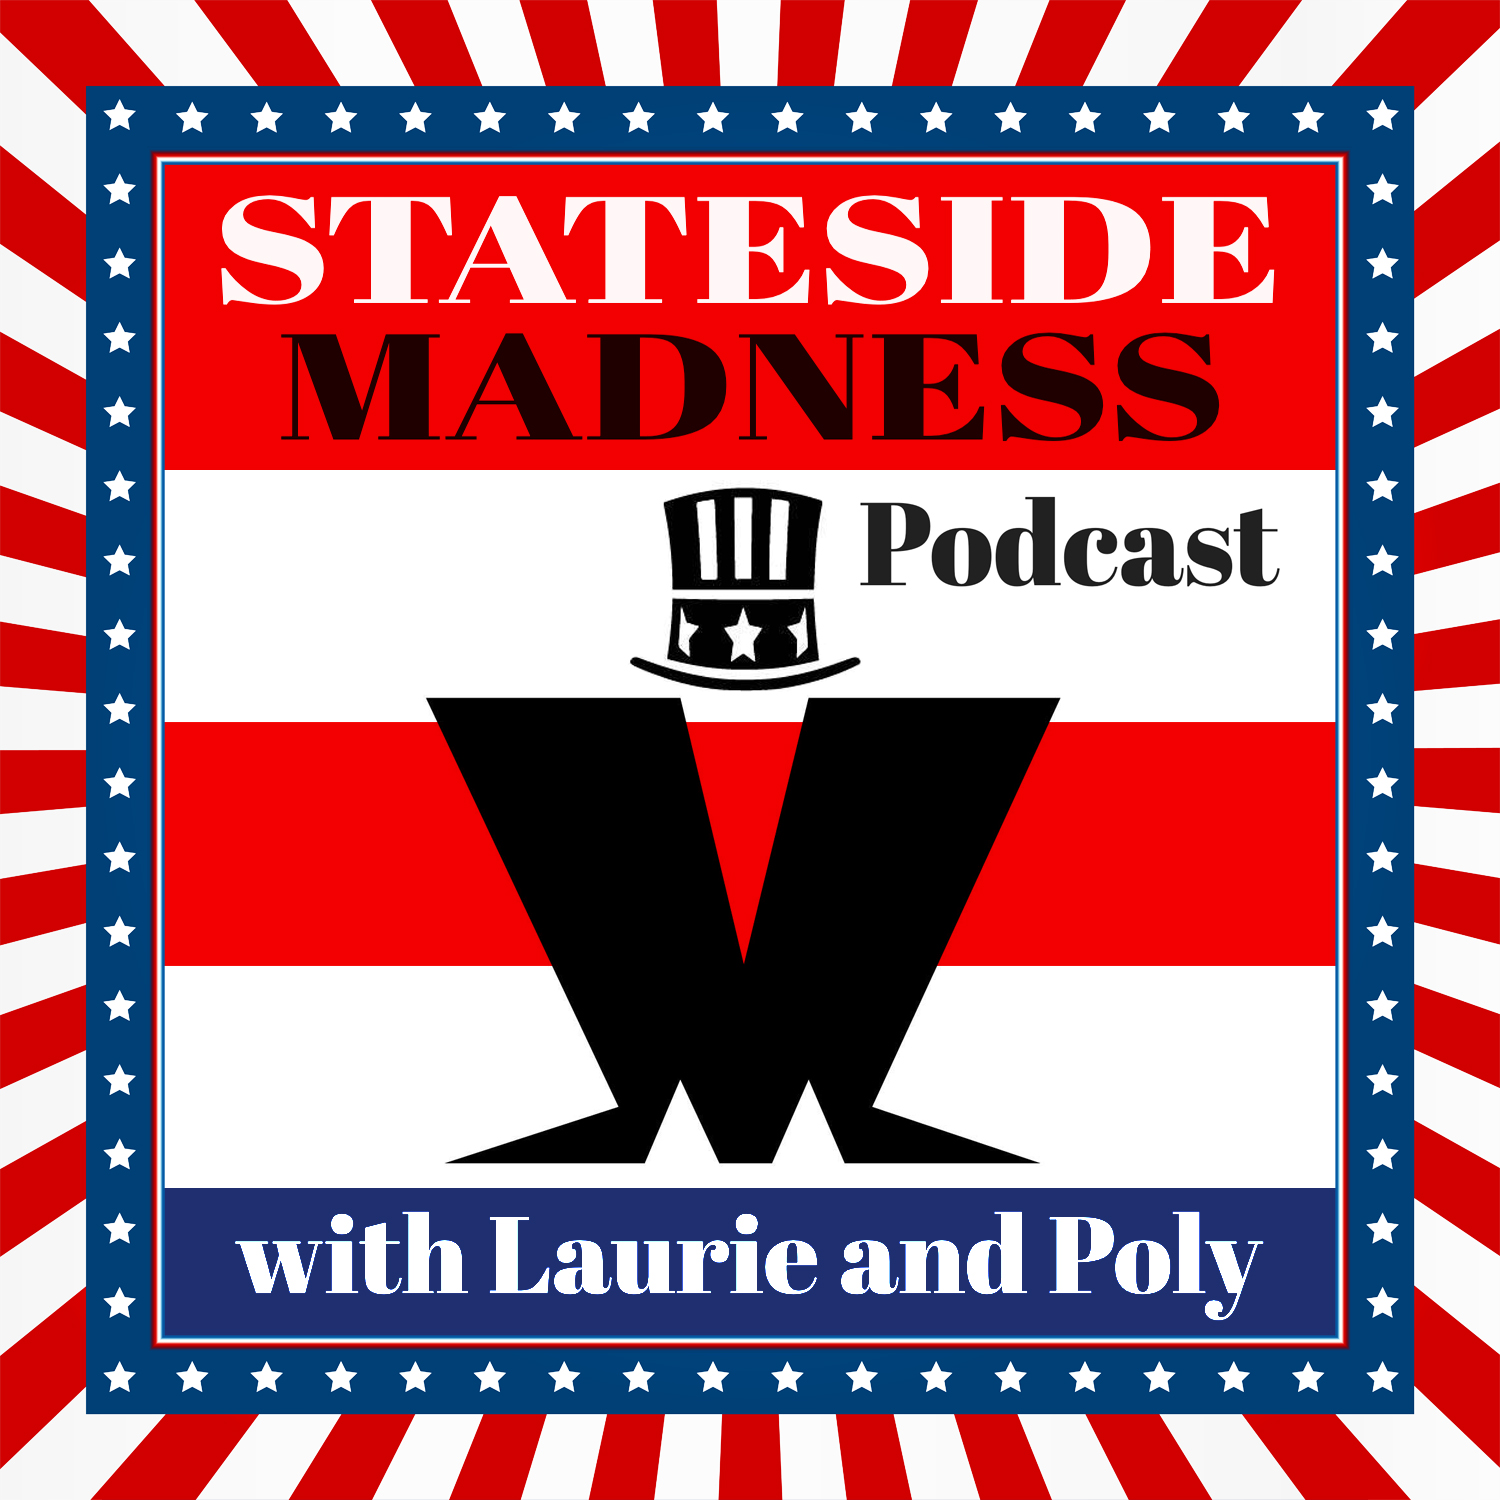 Stateside Madness podcast, episode 1